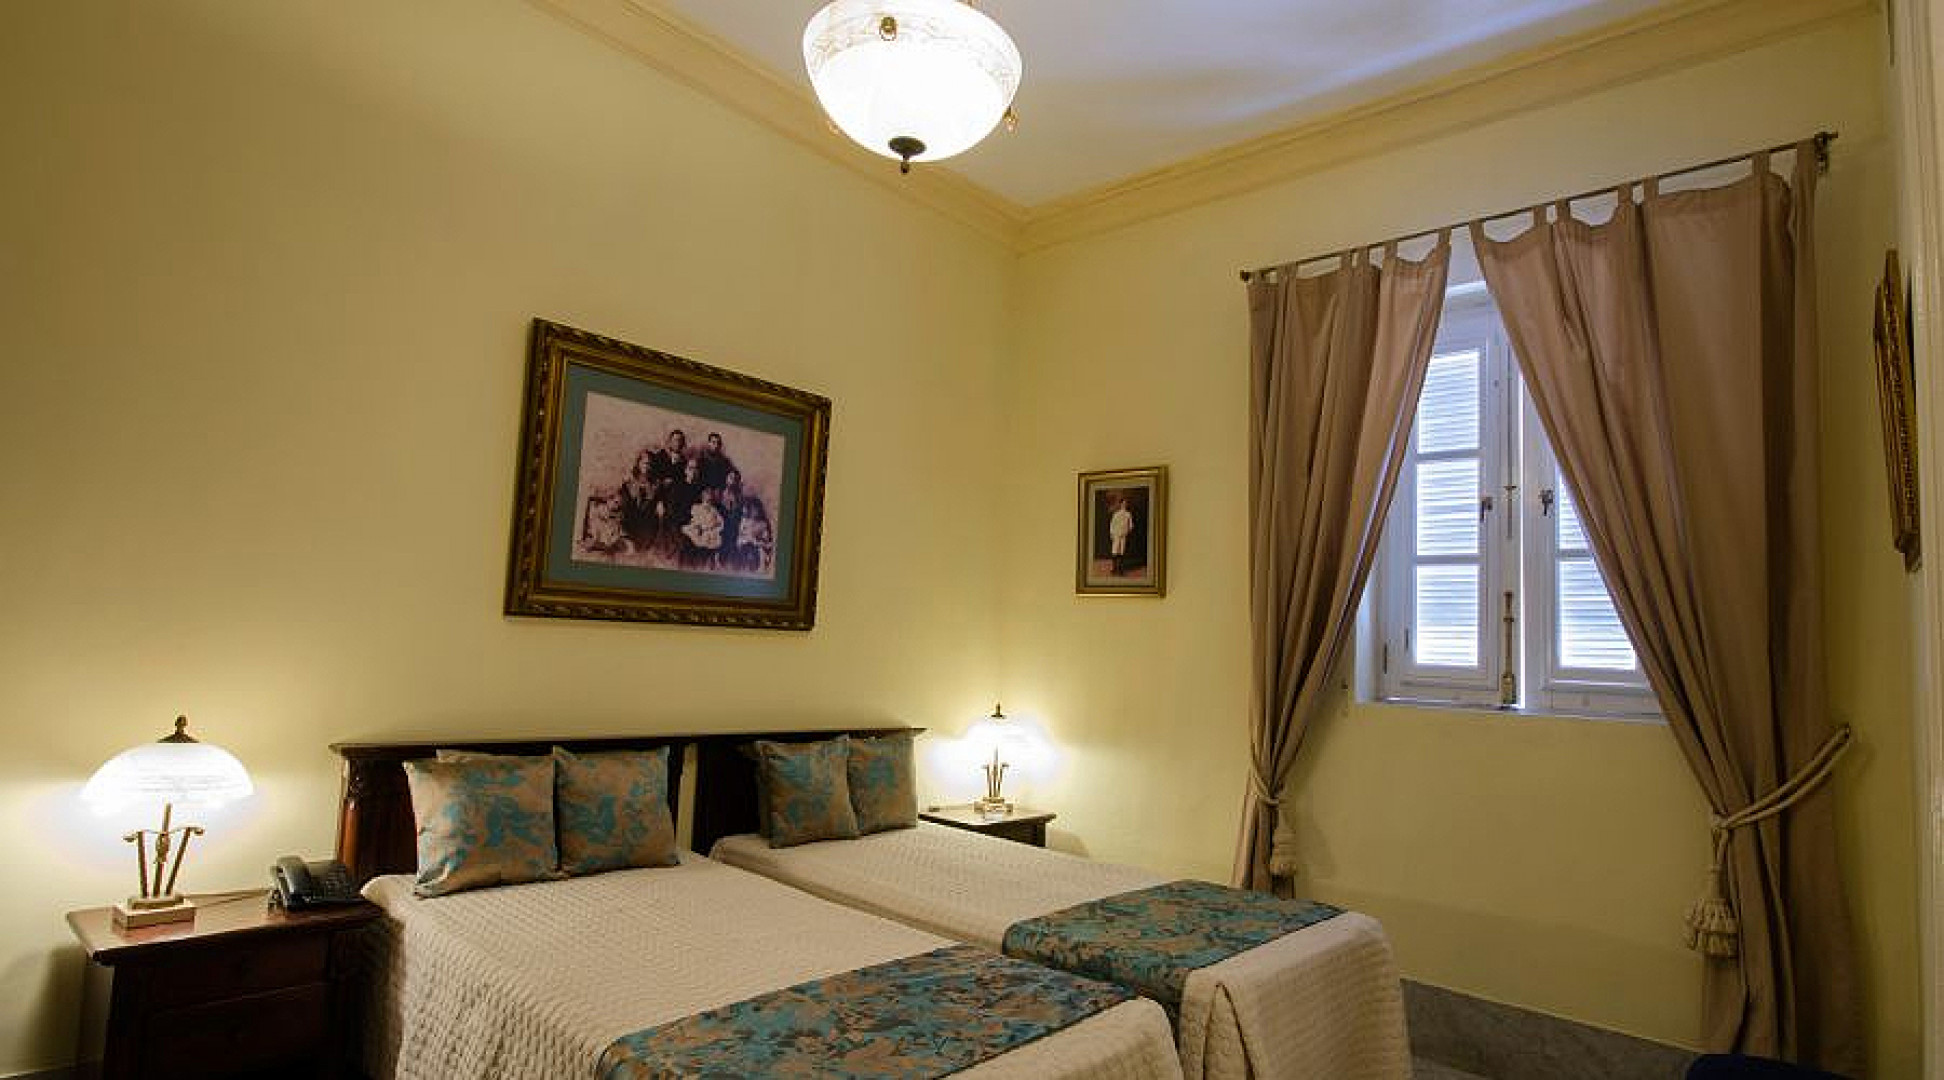 Hotel San Miguel - Chambre double - 1